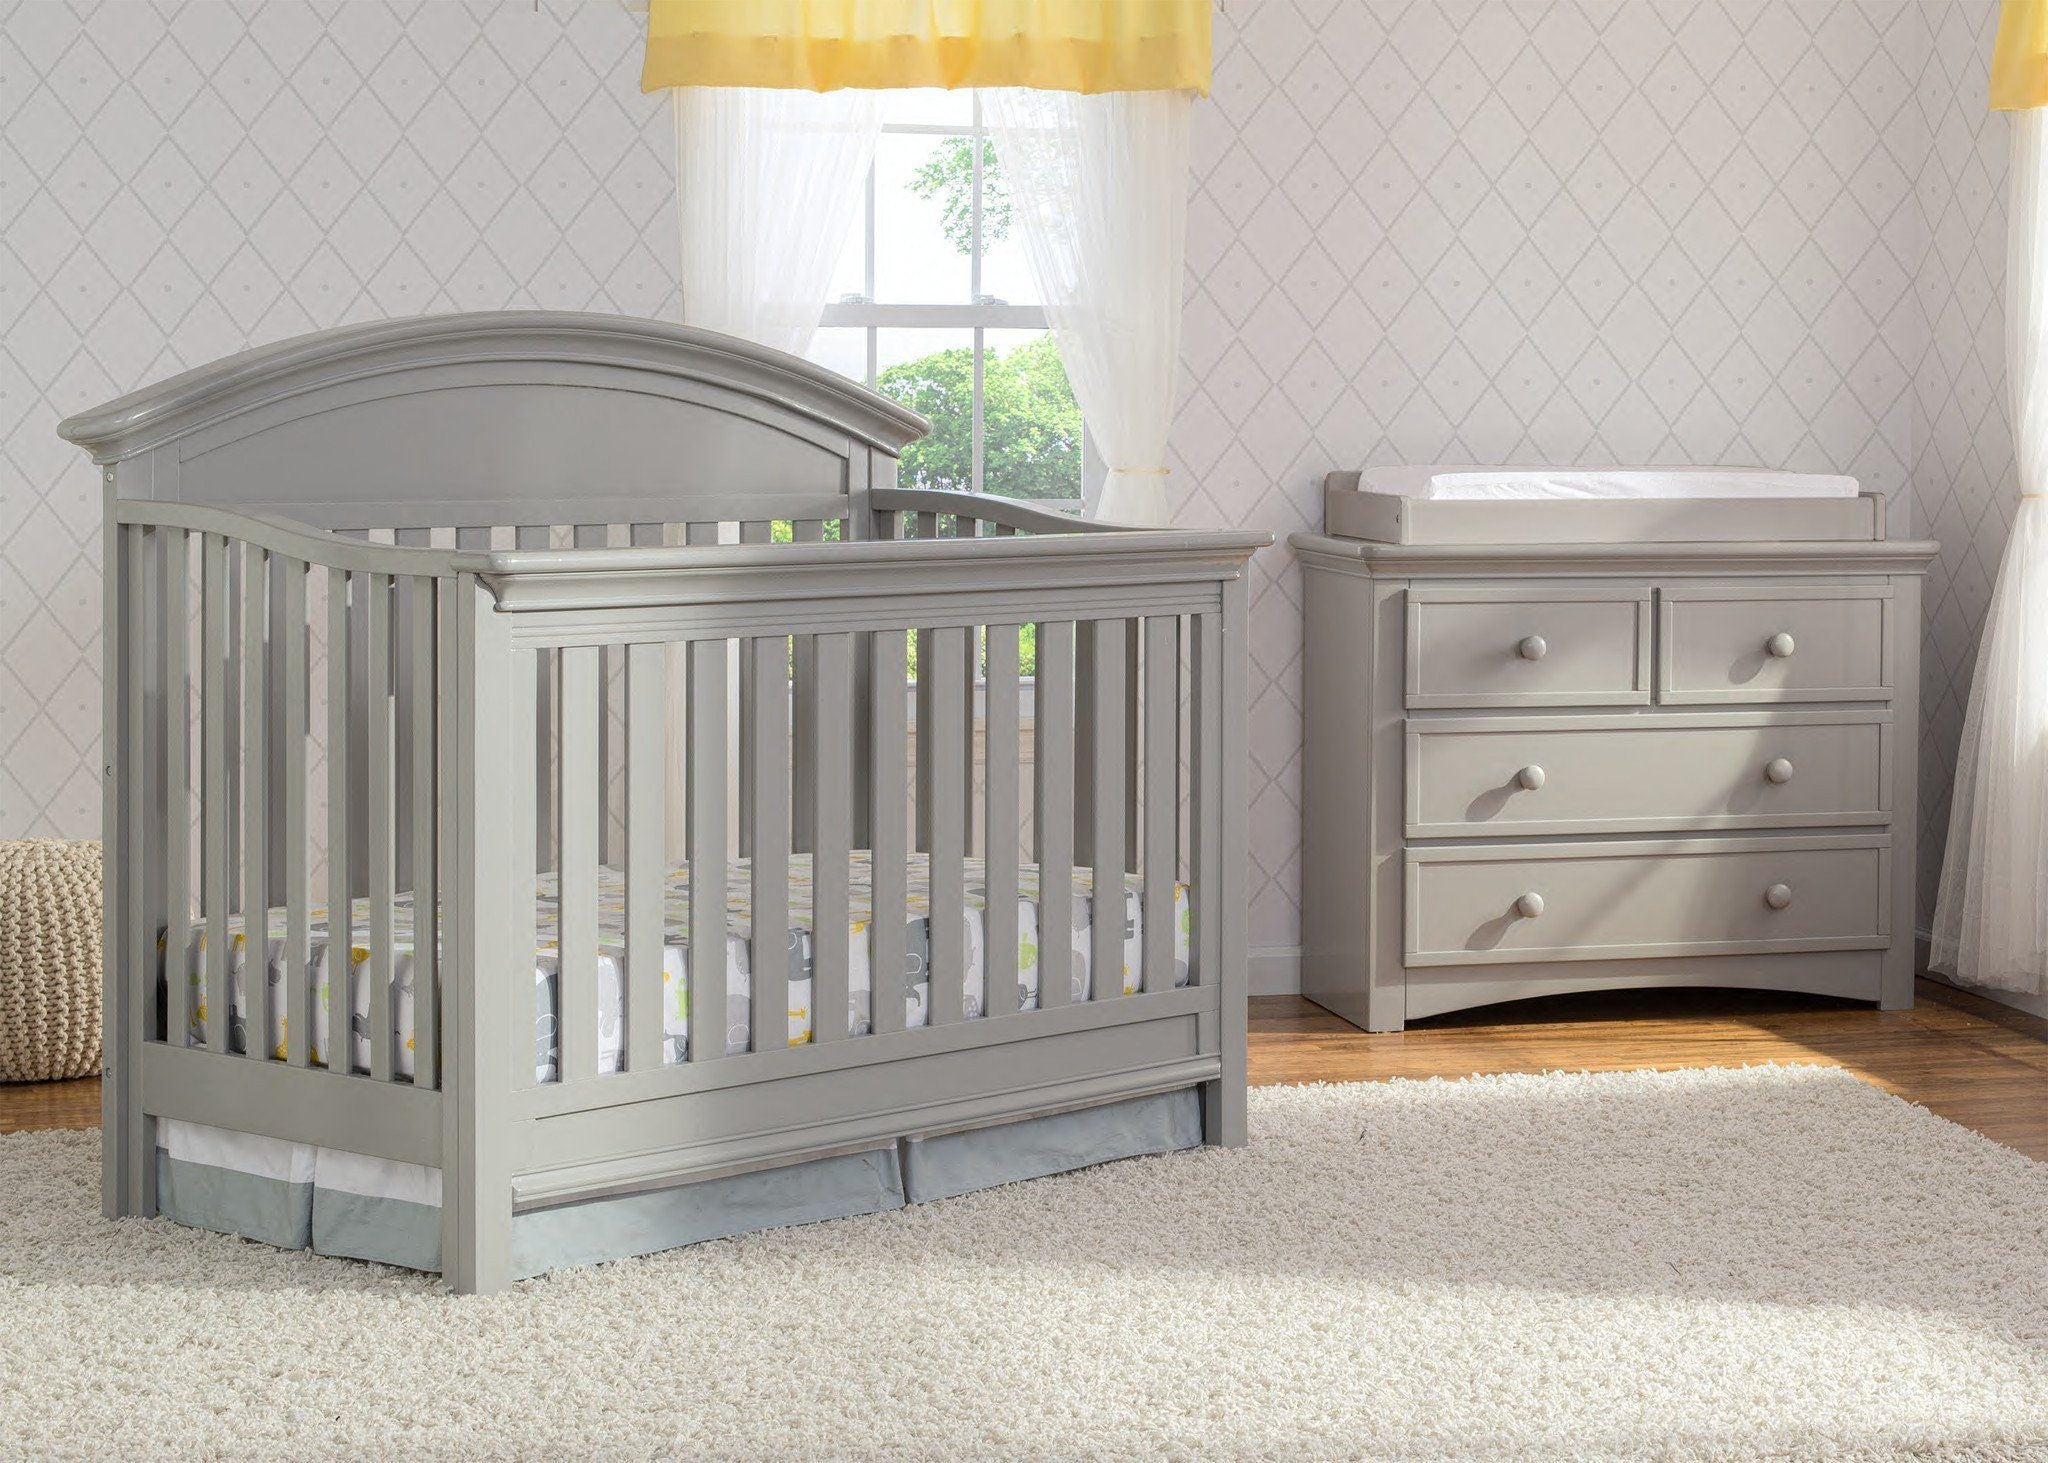 Serta Grey (026) Aberdeen 4-in-1 Crib, Crib Conversion in Setting 2 a1a